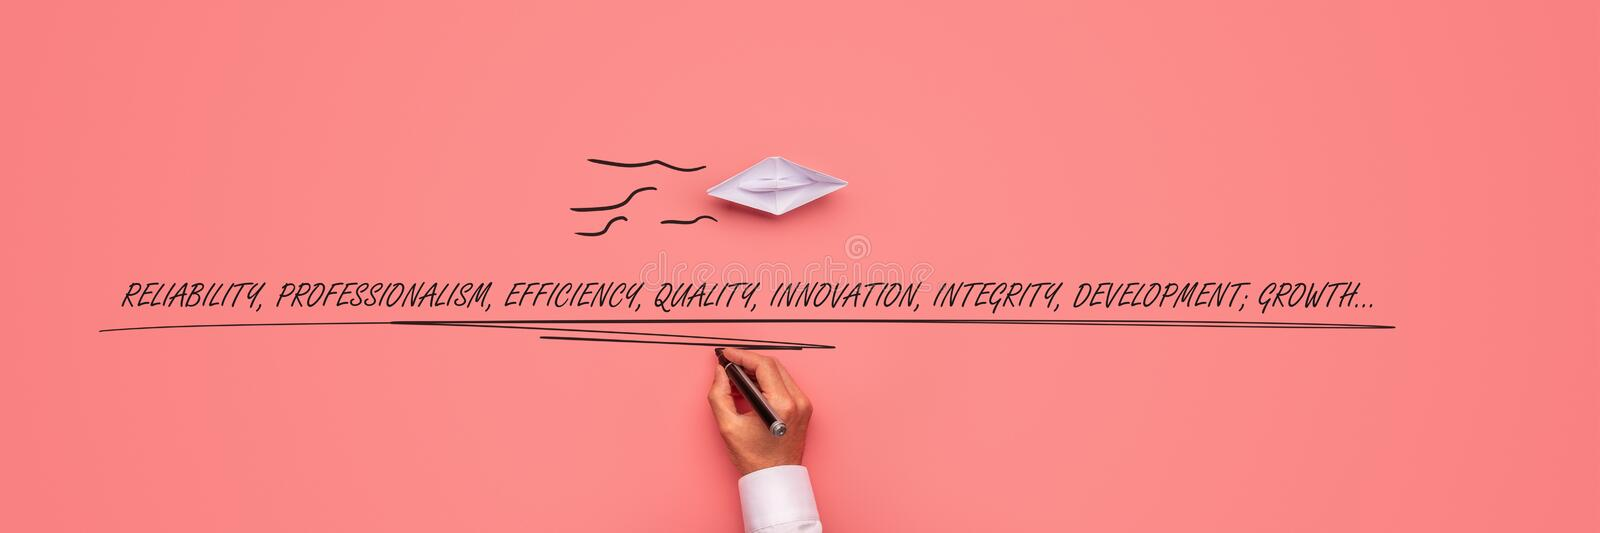 Business success conceptual image royalty free stock photography